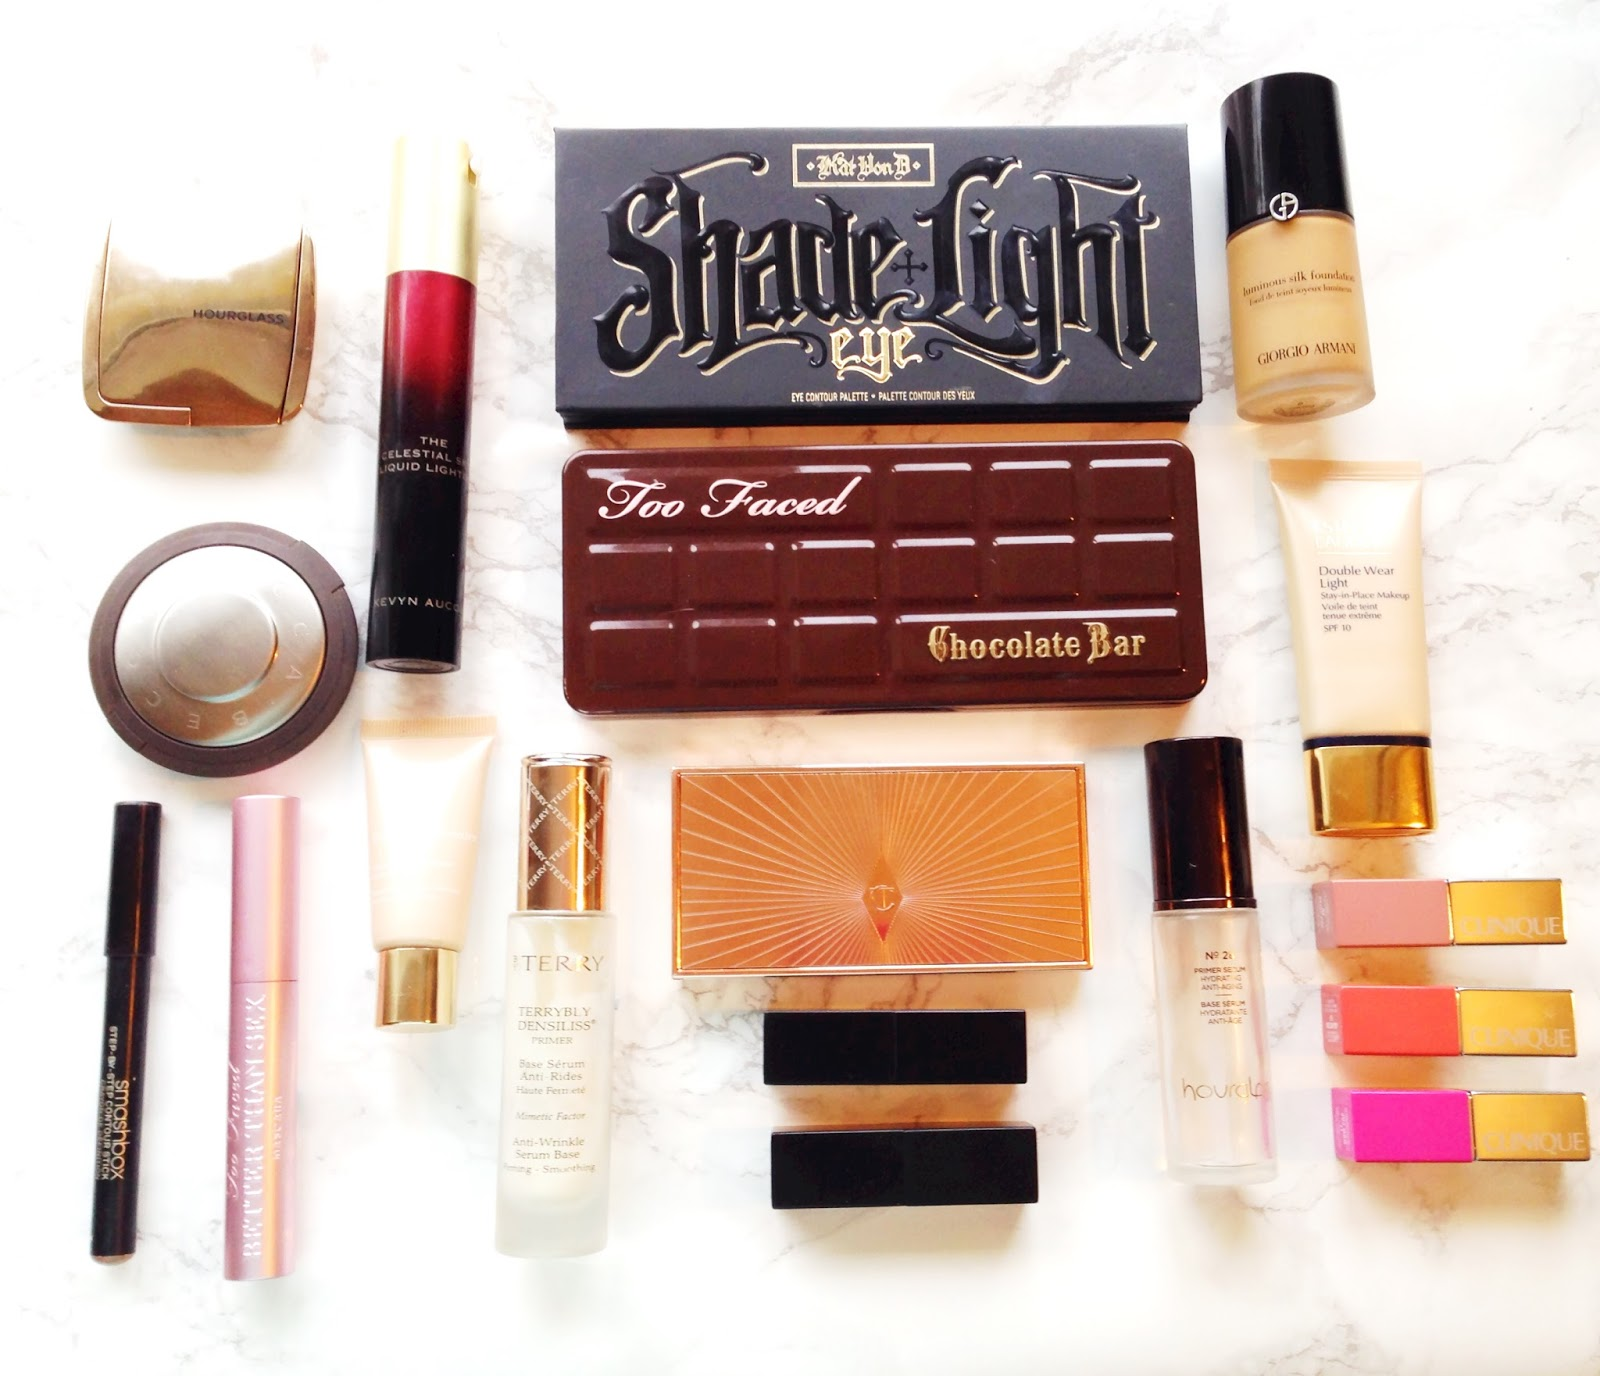 Top 15 Make Up Items From 2015 Featuring Kat Von D Too